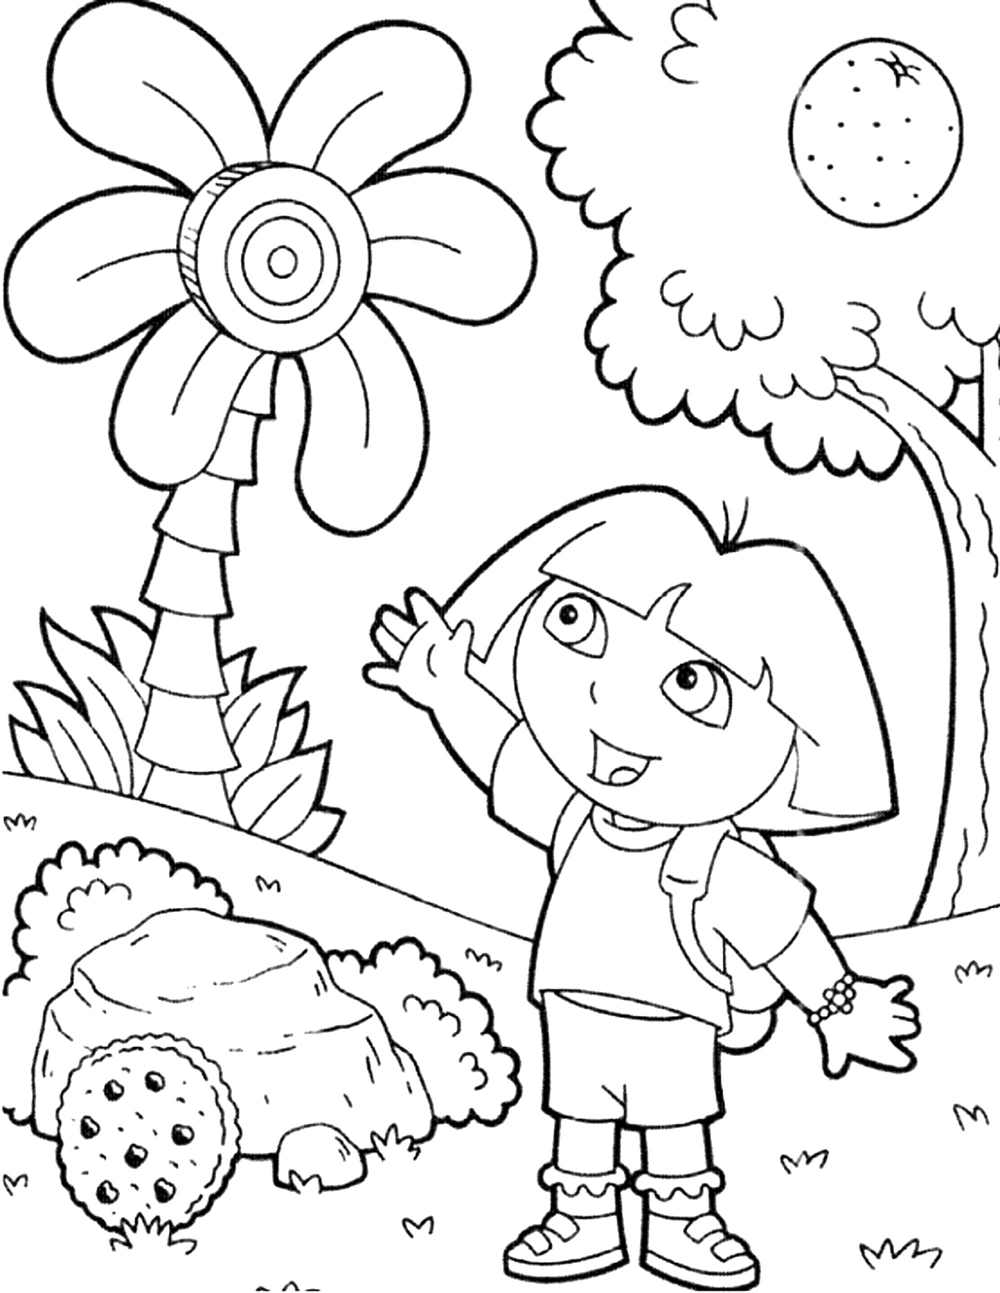 dora to color print download dora coloring pages to learn new things dora color to 1 1